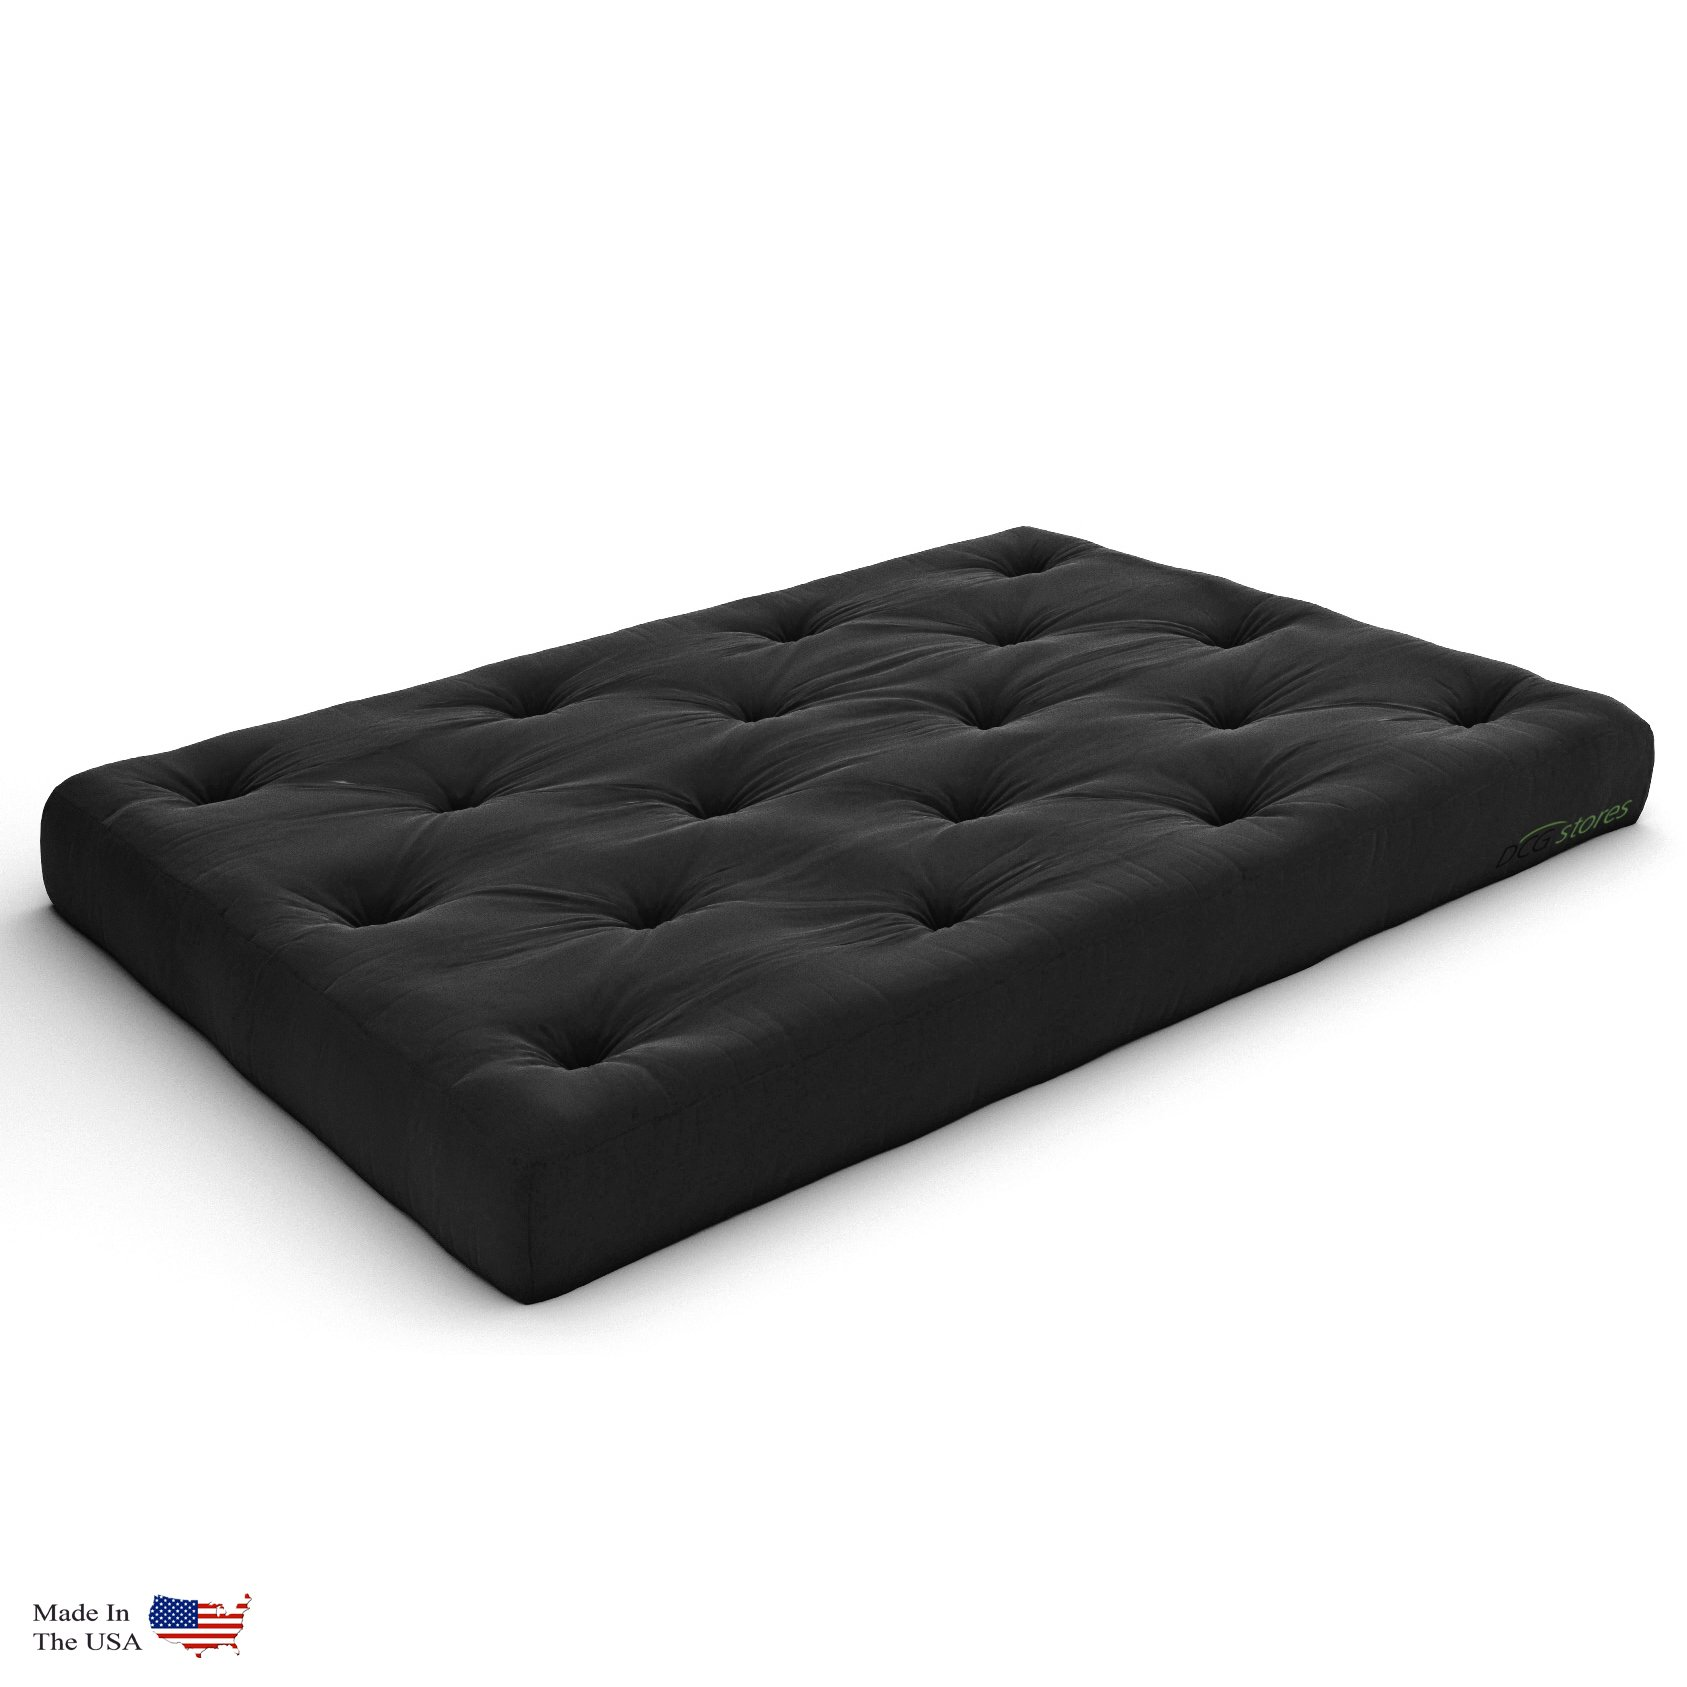 Nirvana Futons Extra Thick Premium 10-Inch Queen Futon Mattress, Black Twill - Made in USA by Nirvana Futons